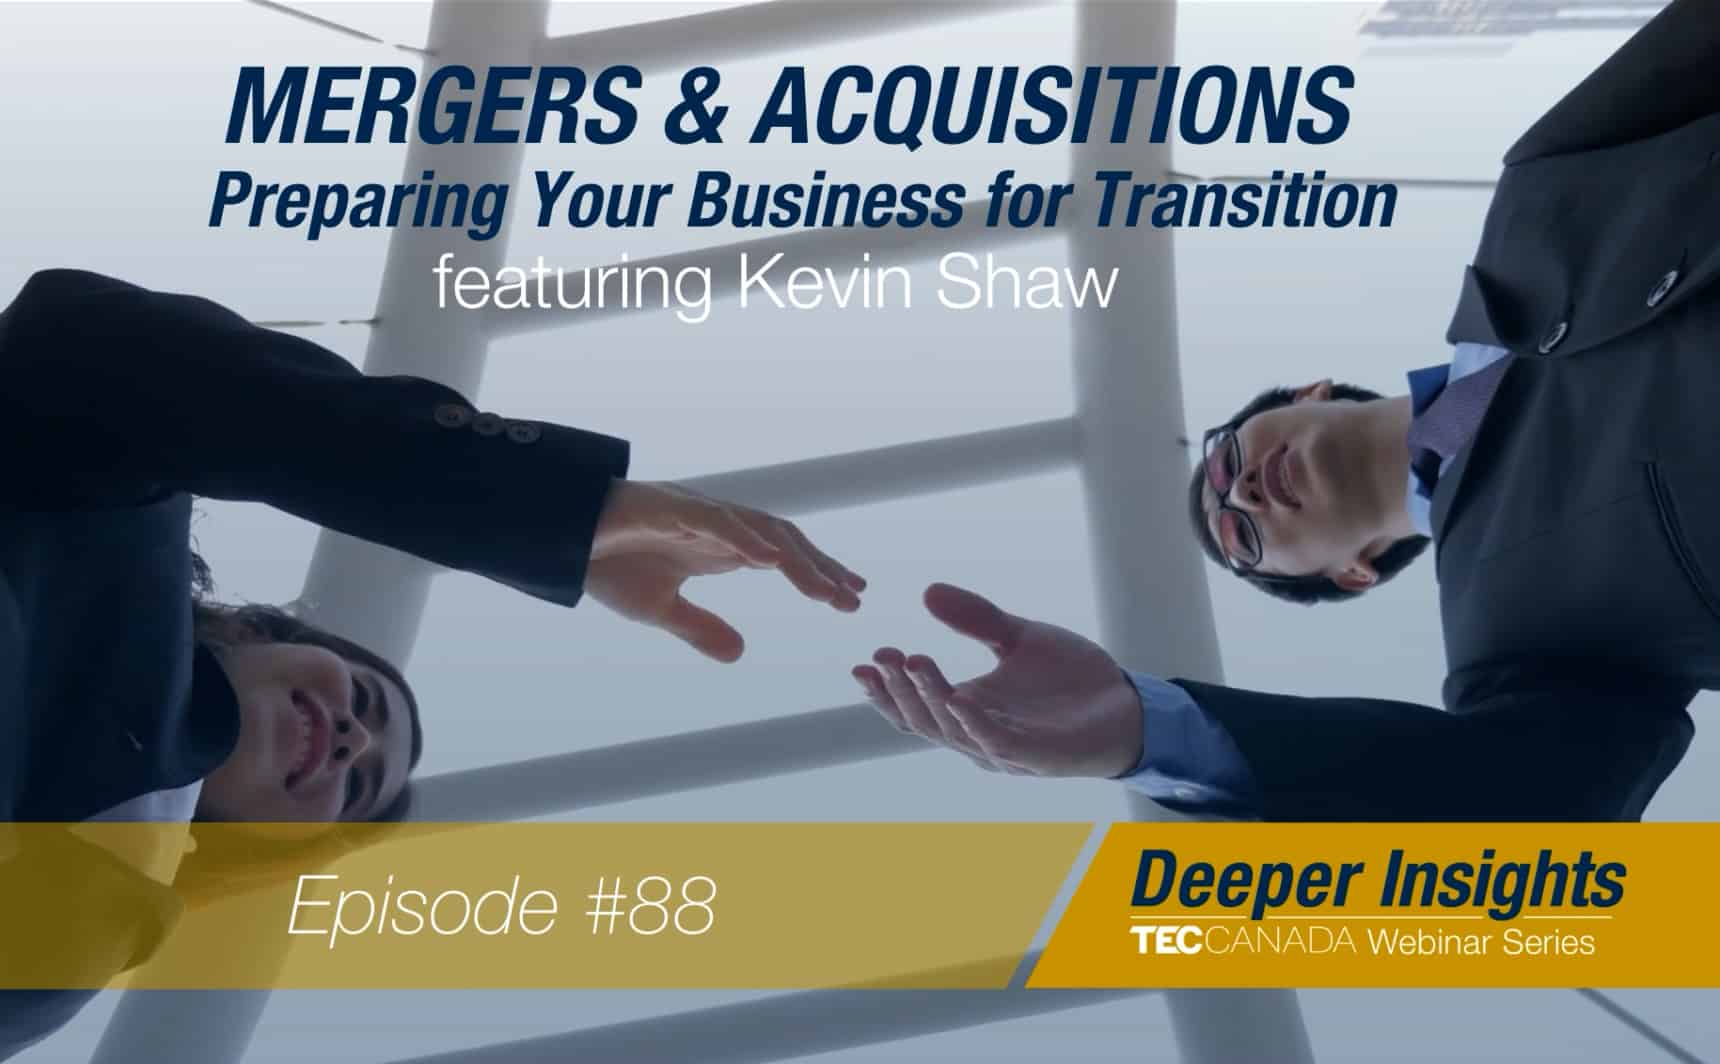 Mergers & Acquisitions – Preparing Your Business for Transition